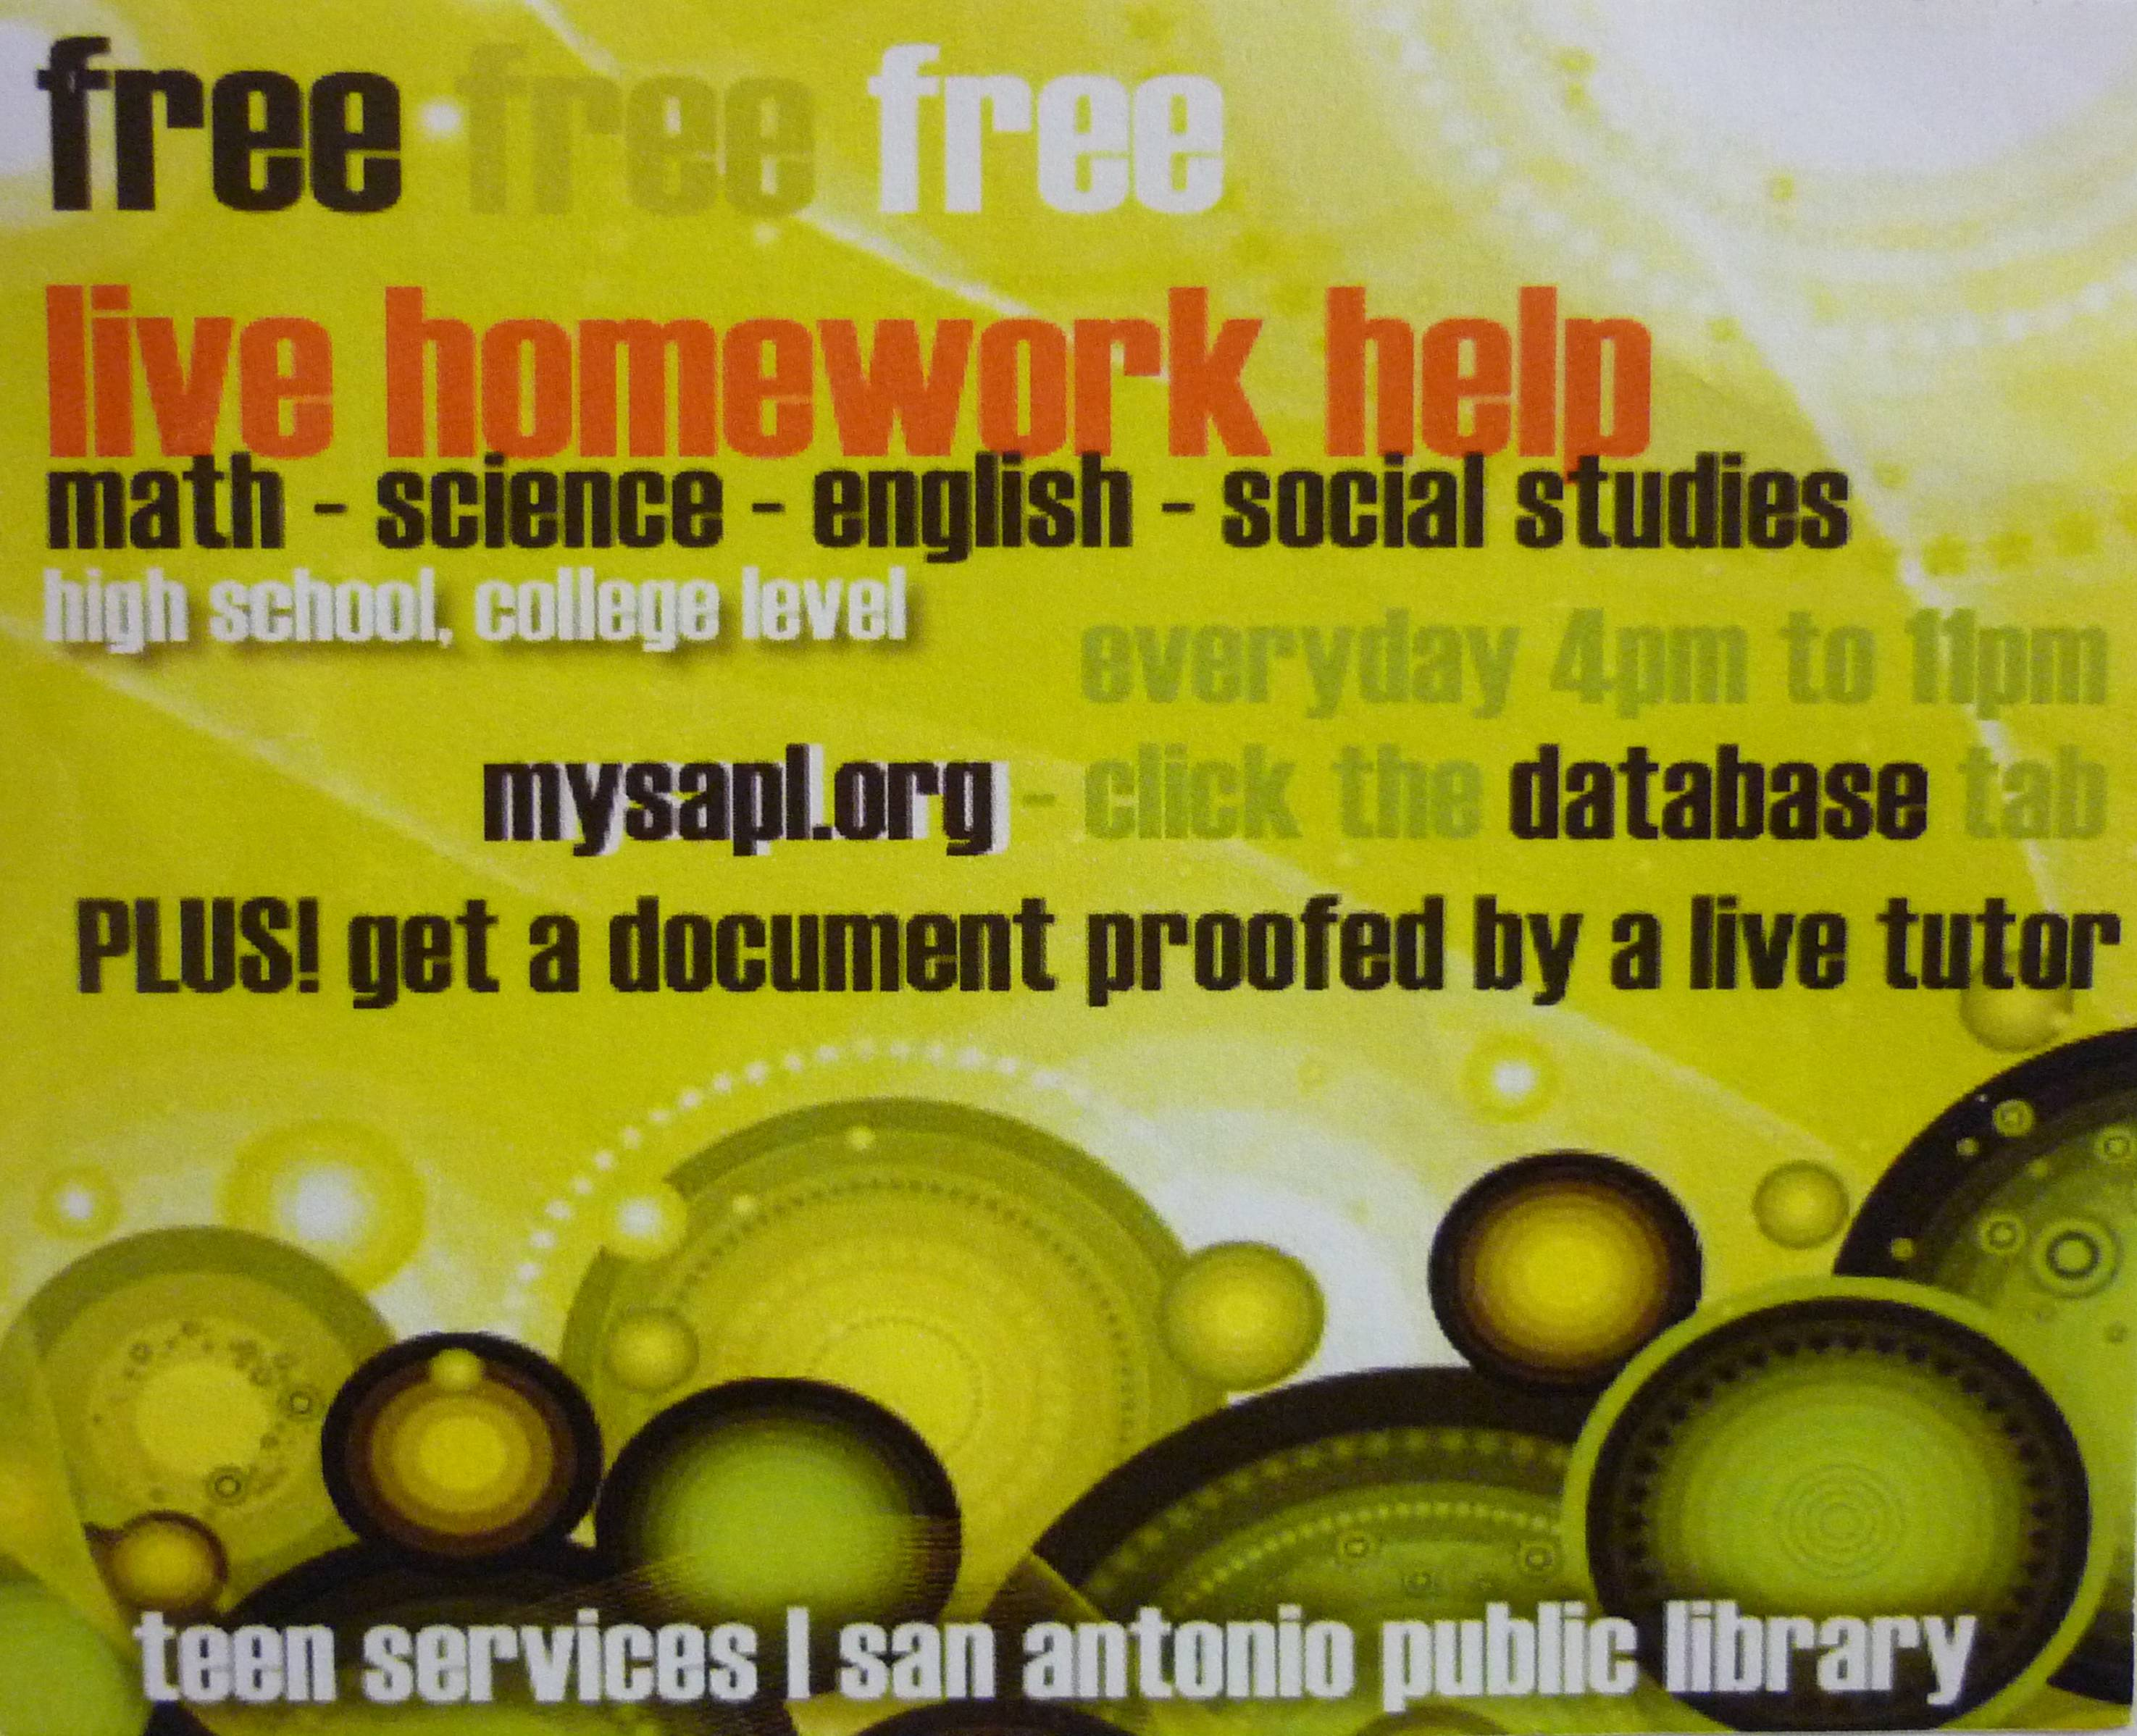 Live homework help library branch